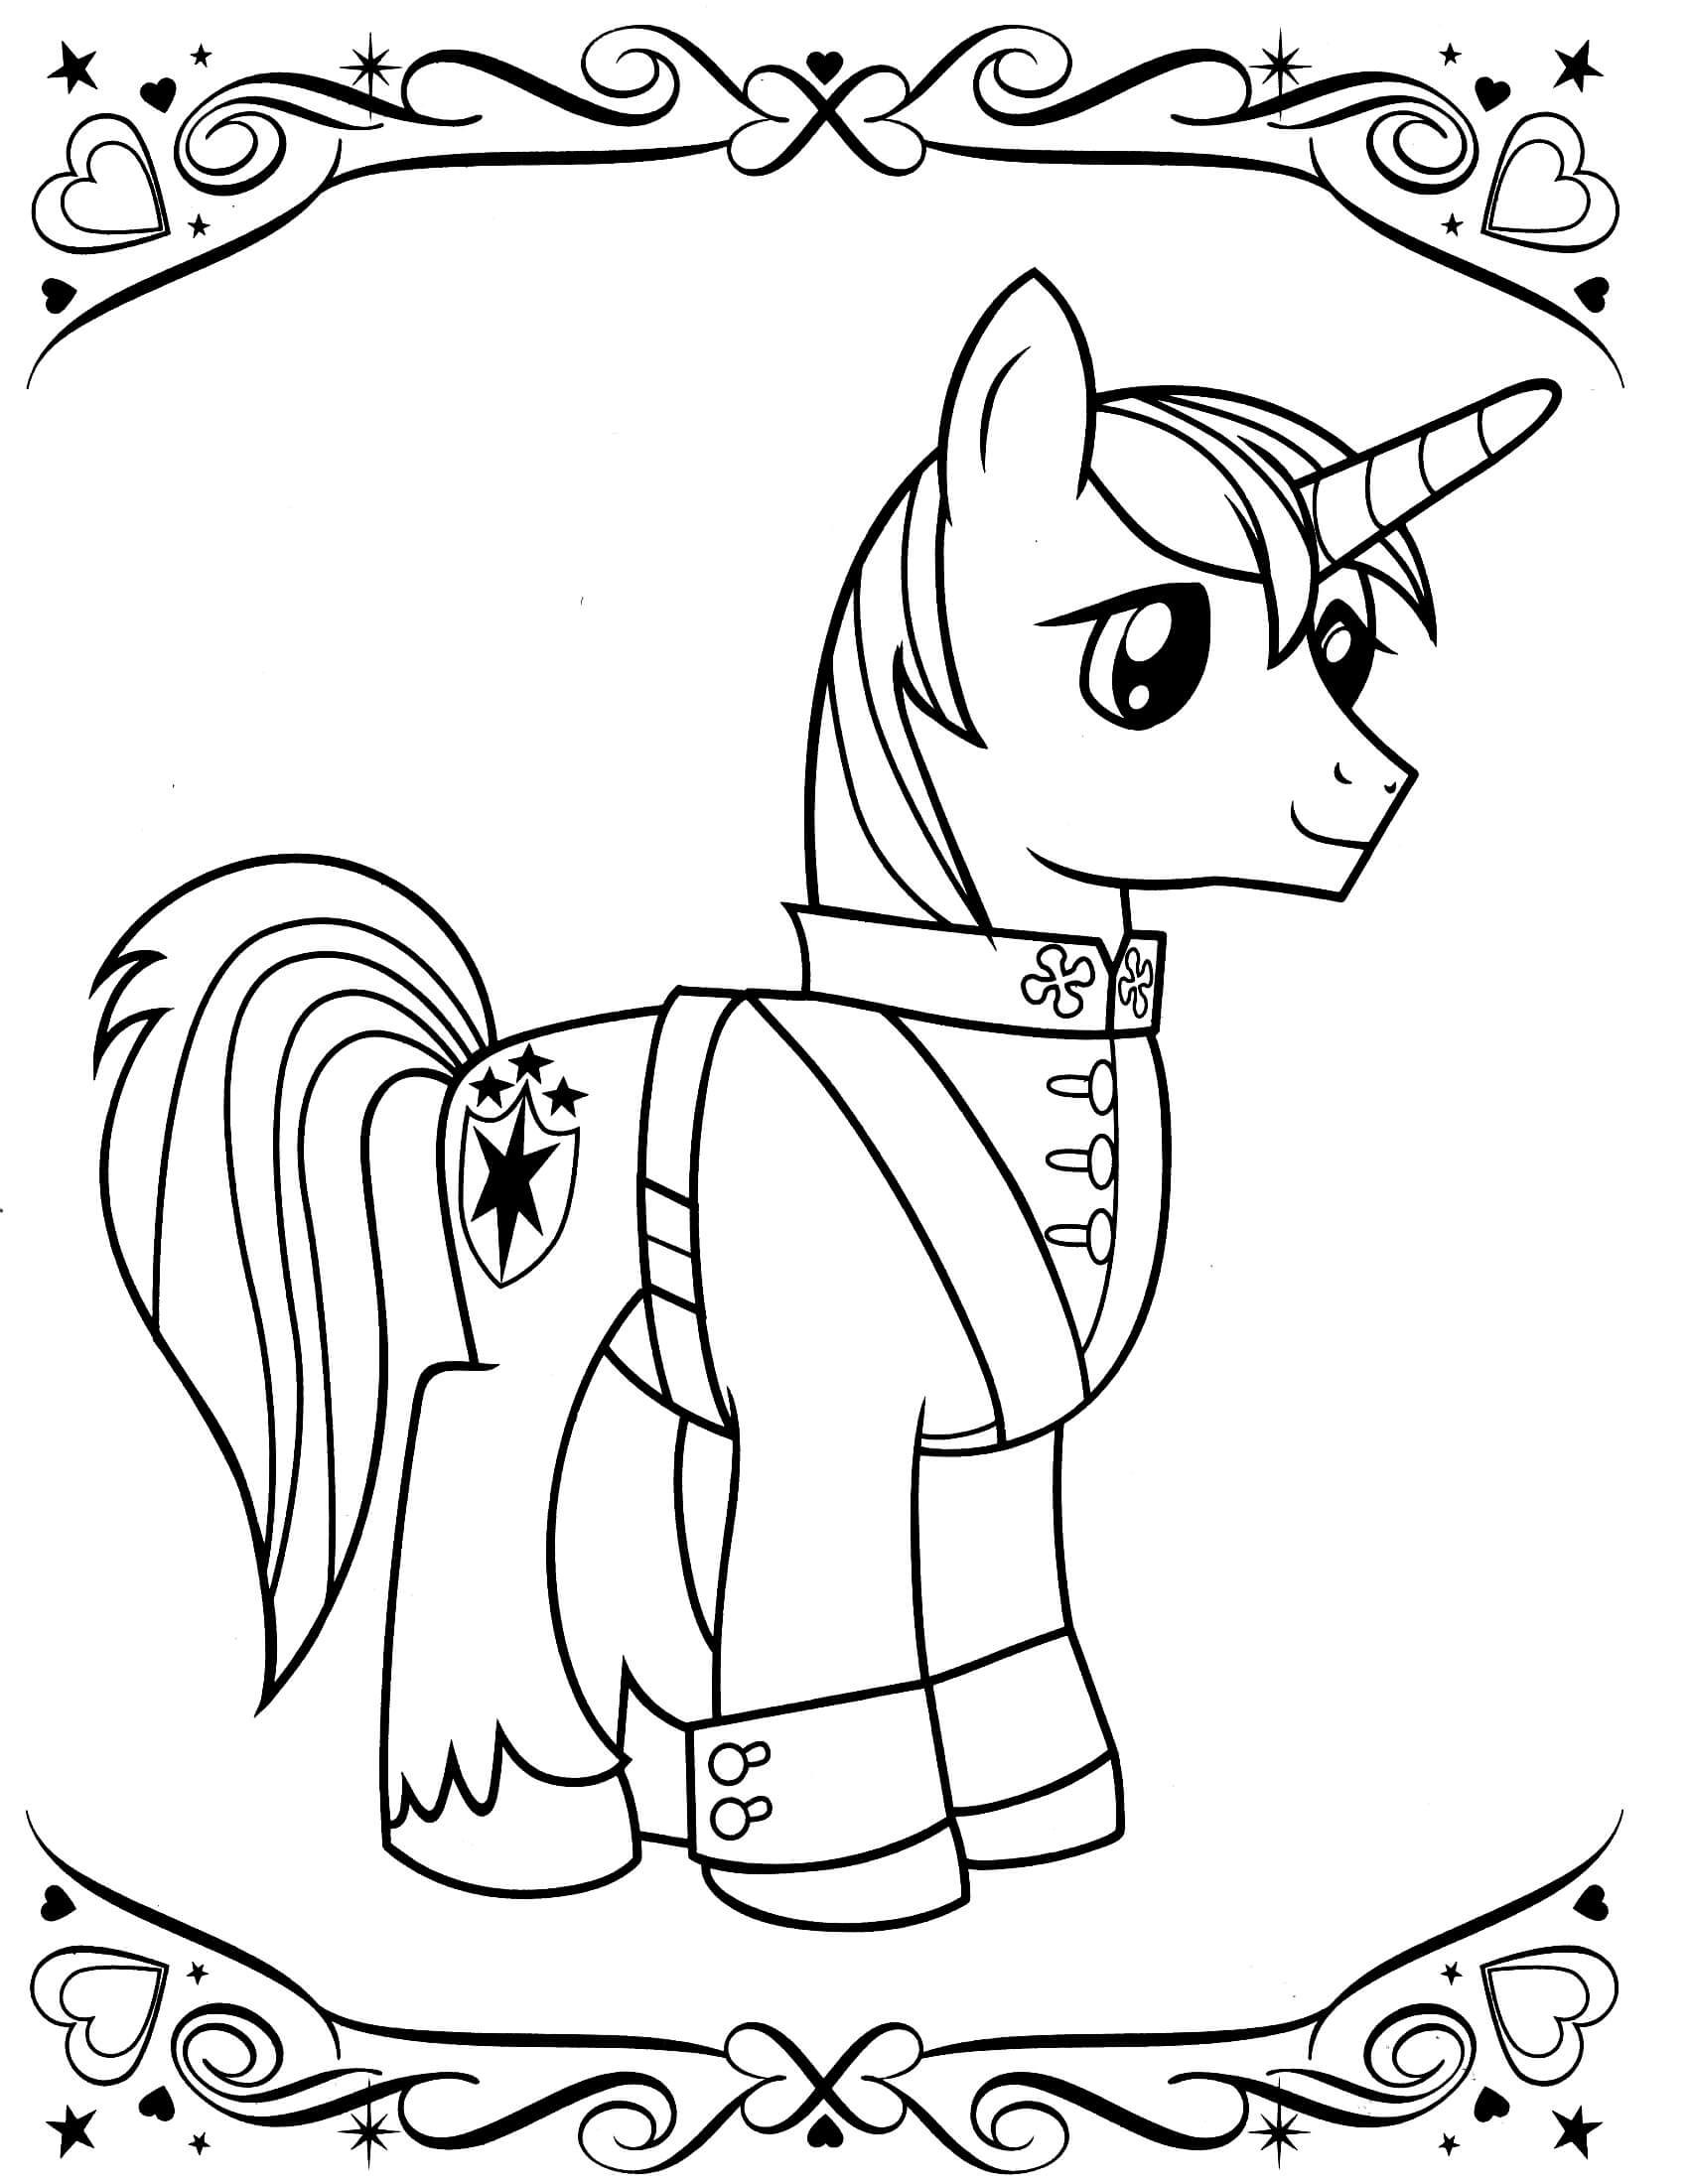 Ausmalbilder My Little Pony Als Menschen : 20 My Little Pony Coloring Pages Of 2017 Your Kid Will Love